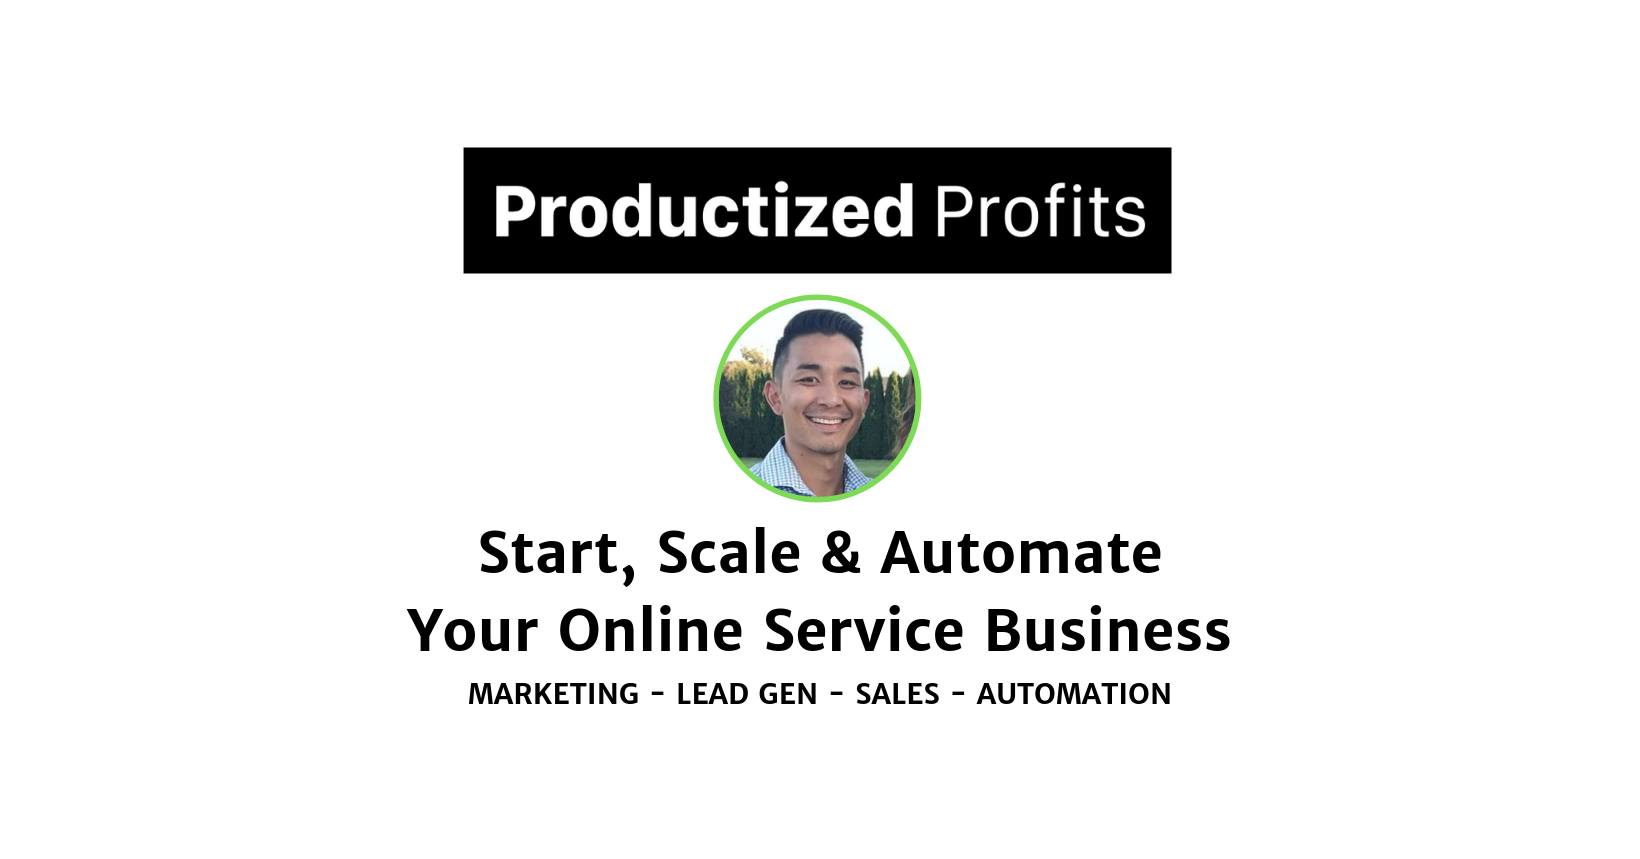 Productized Profits Facebook Group